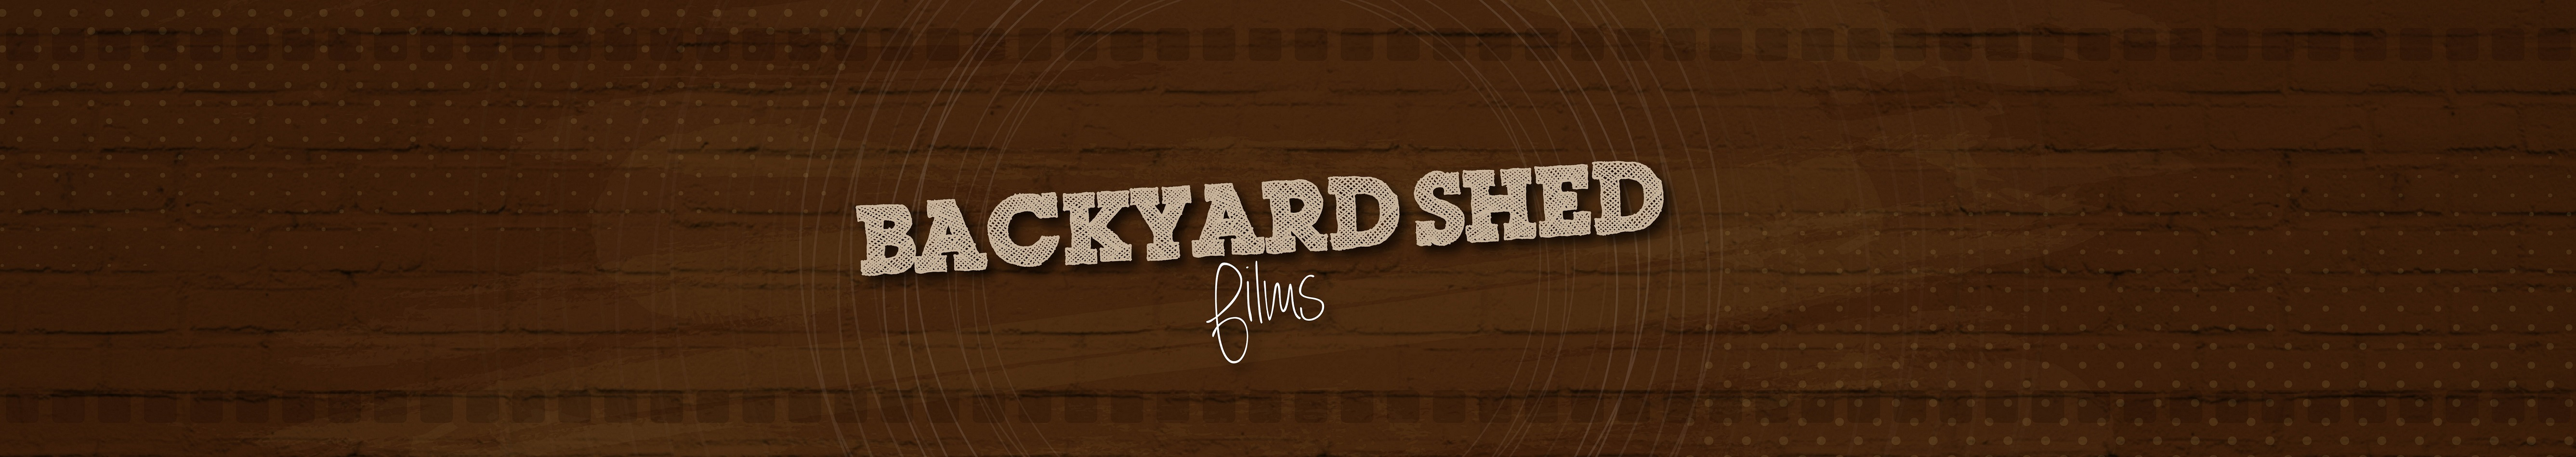 Home Page Revolution Slider | Backyard Shed Films